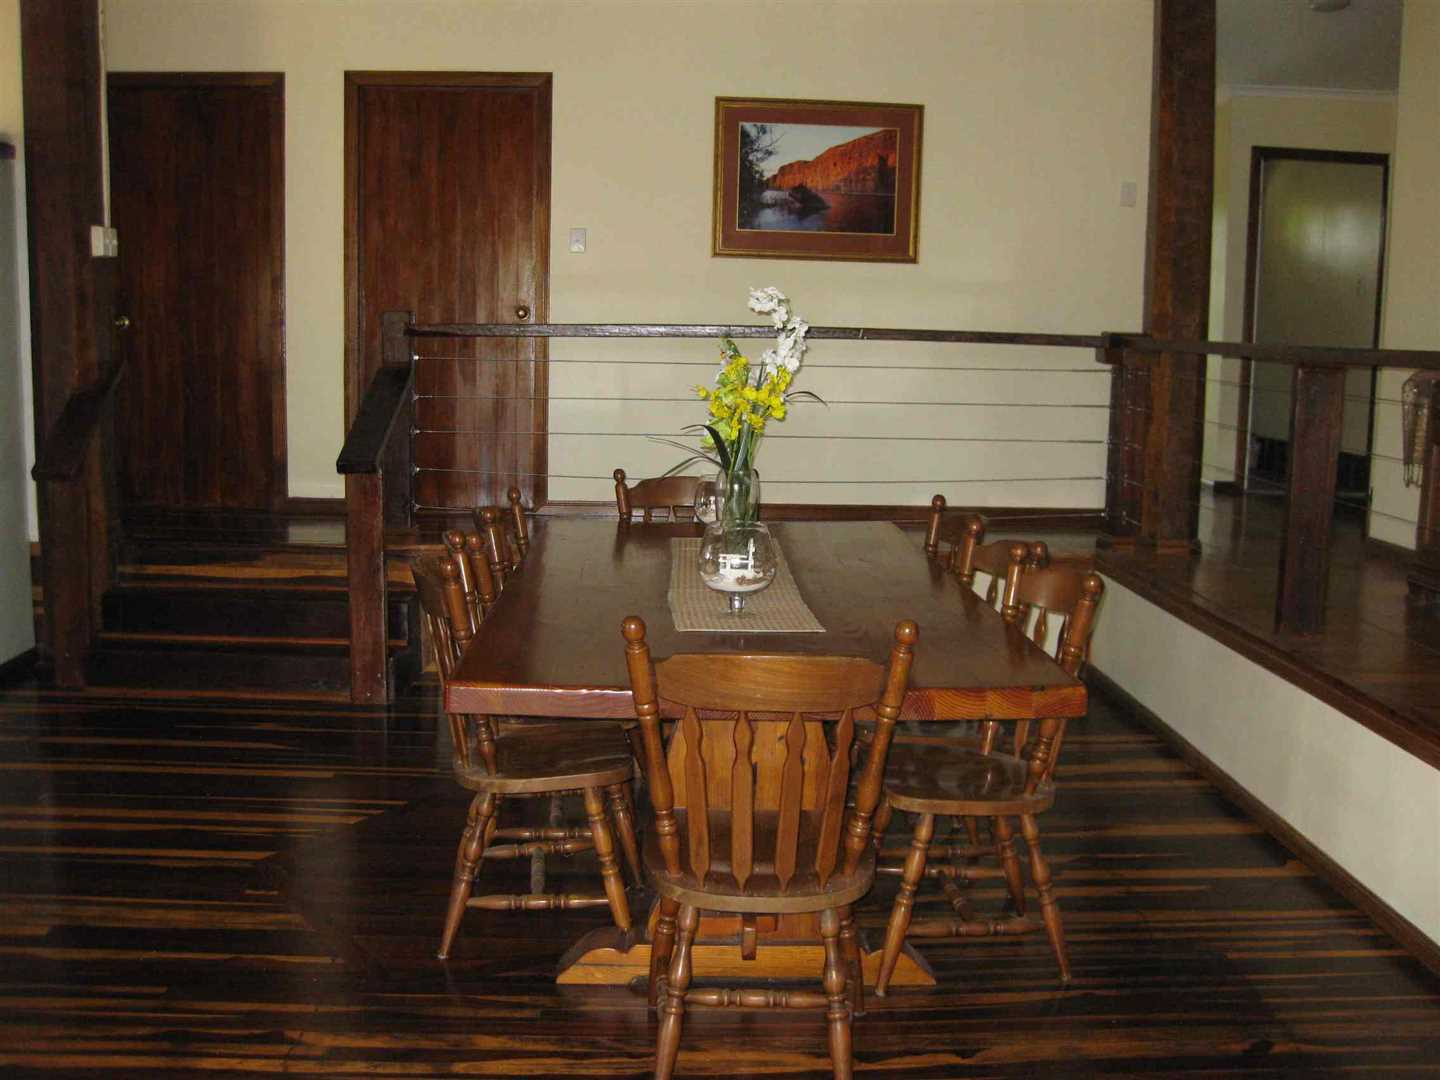 Inside view of part of home showing part of dining area